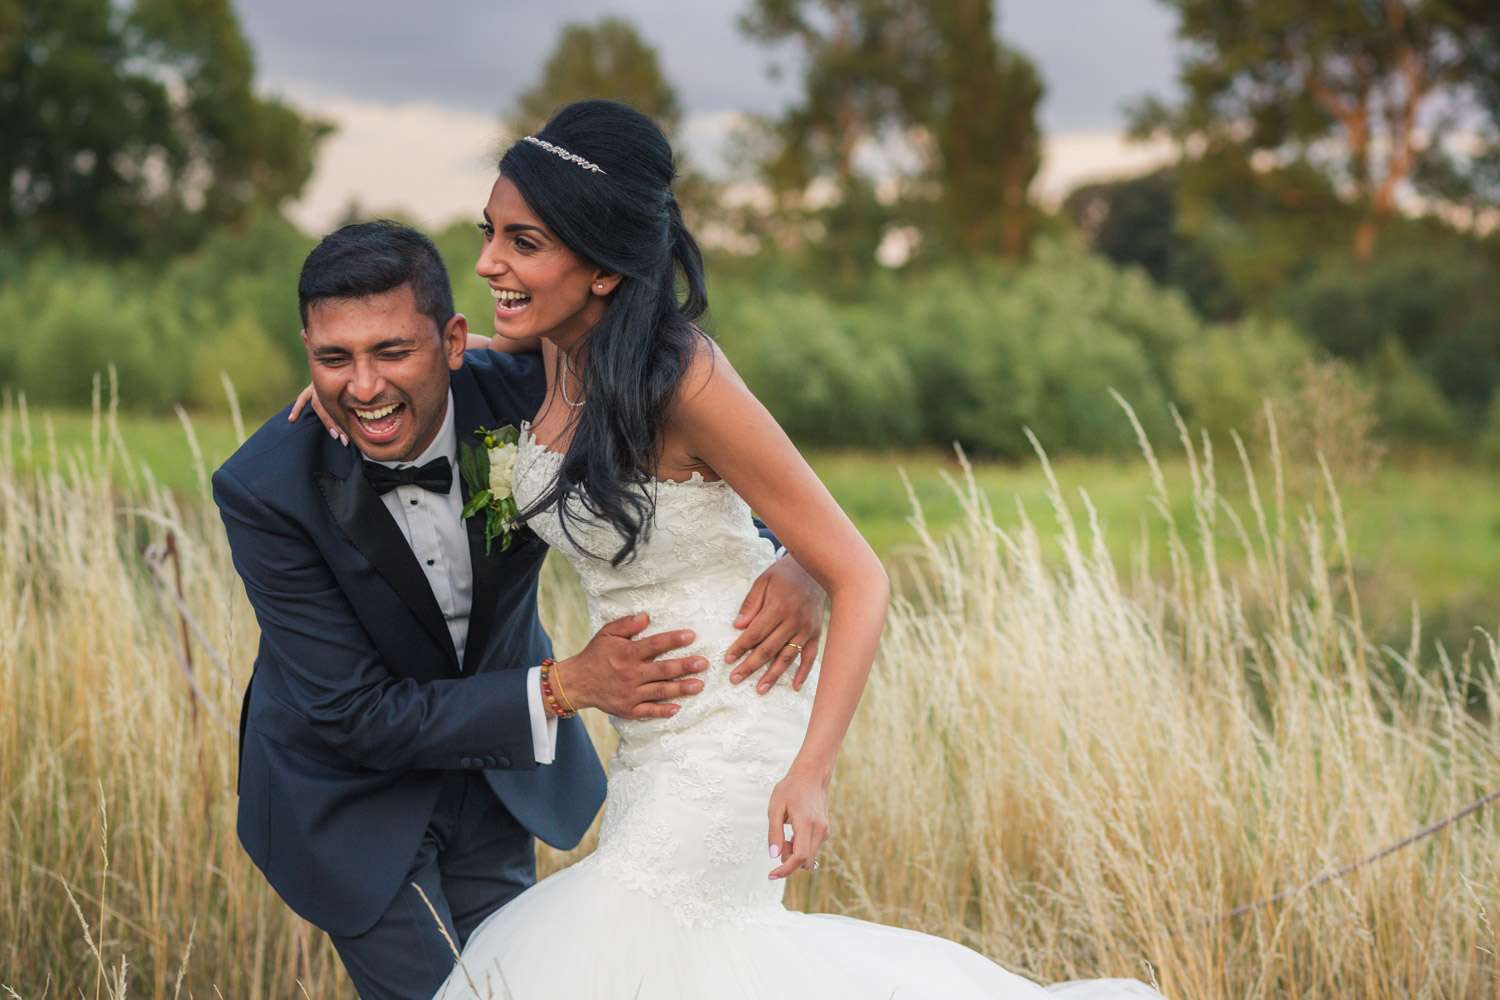 What is a destination wedding photographer?